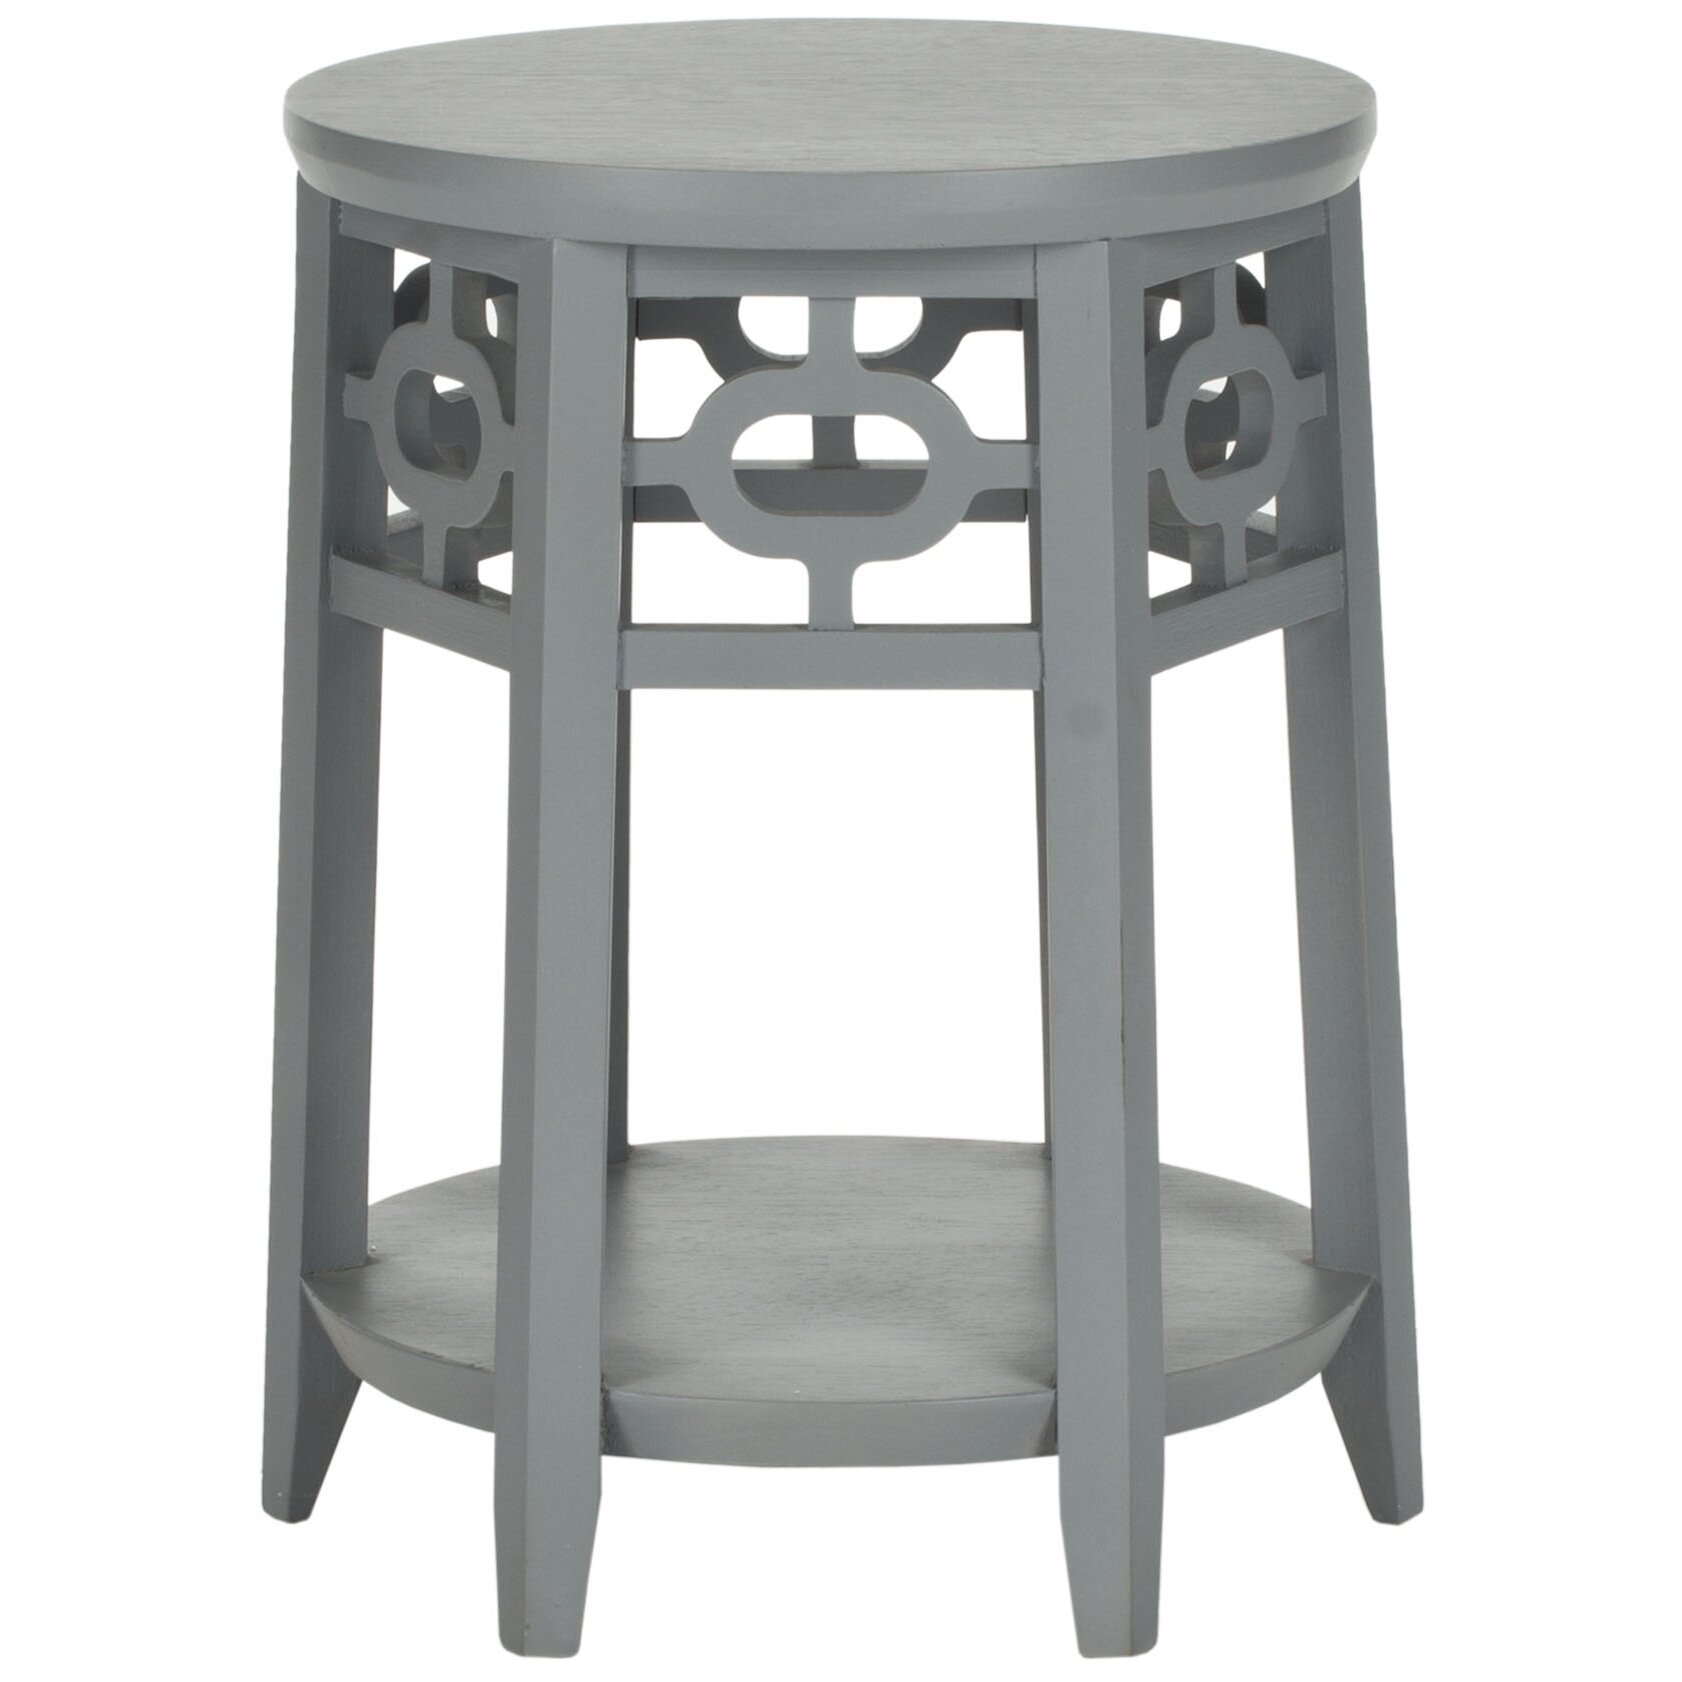 Safavieh adela end table reviews wayfair for Regulation 85 table a